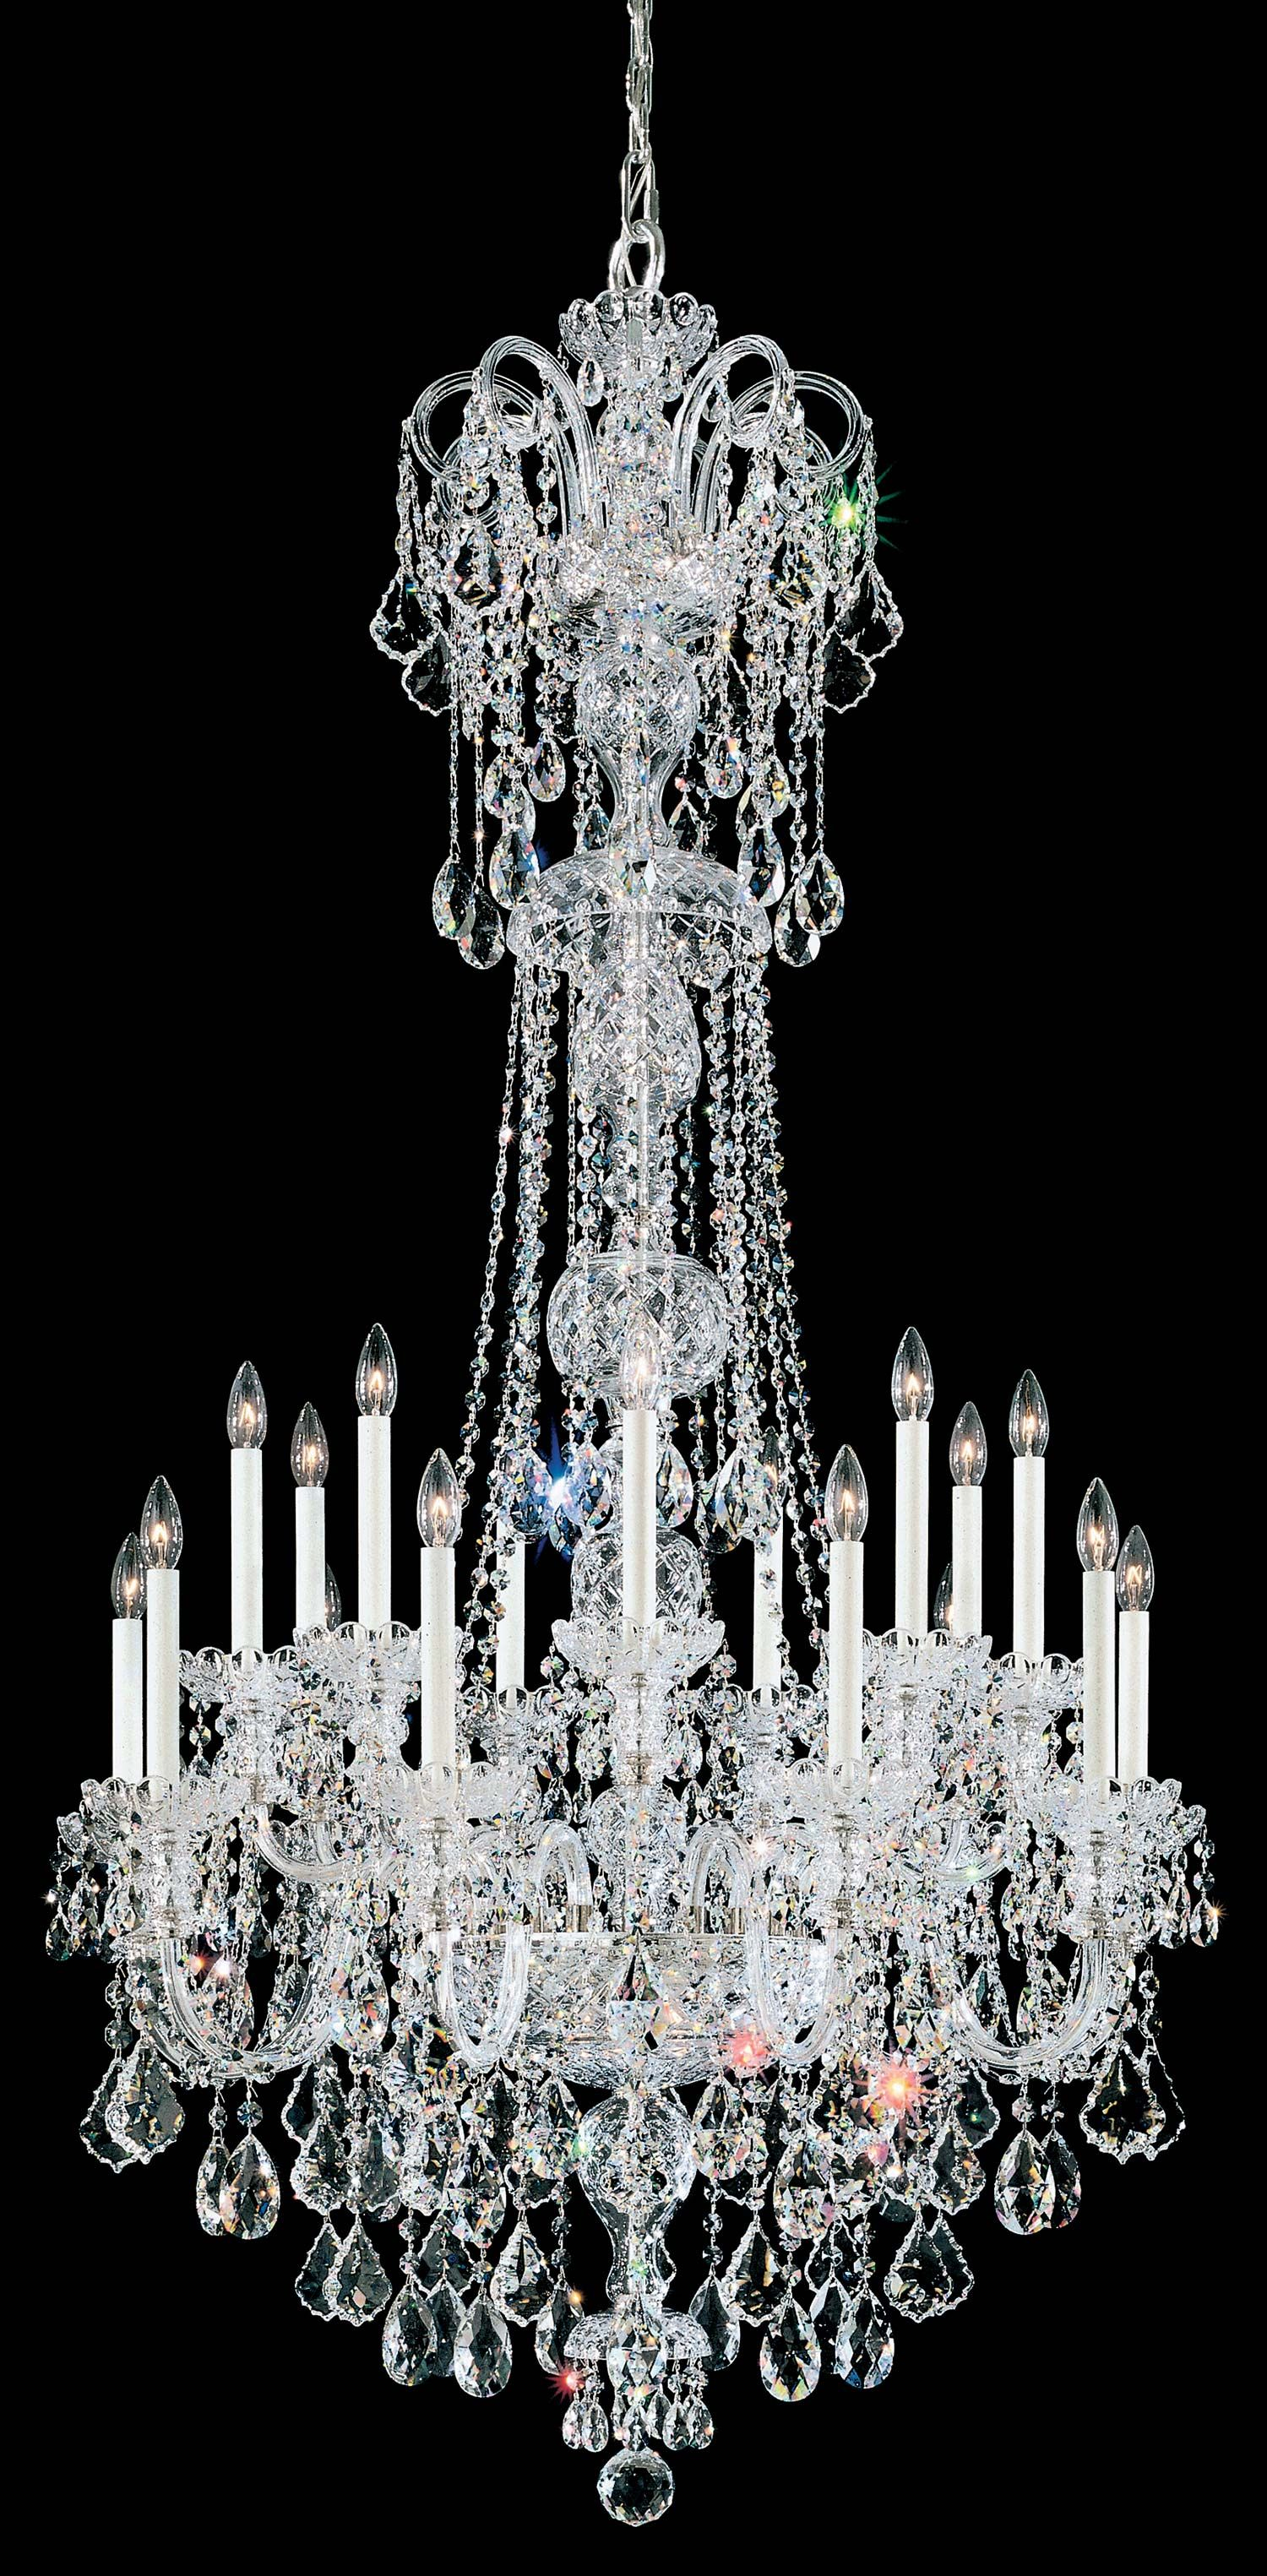 Cors Lighting: Chandelier Lighting